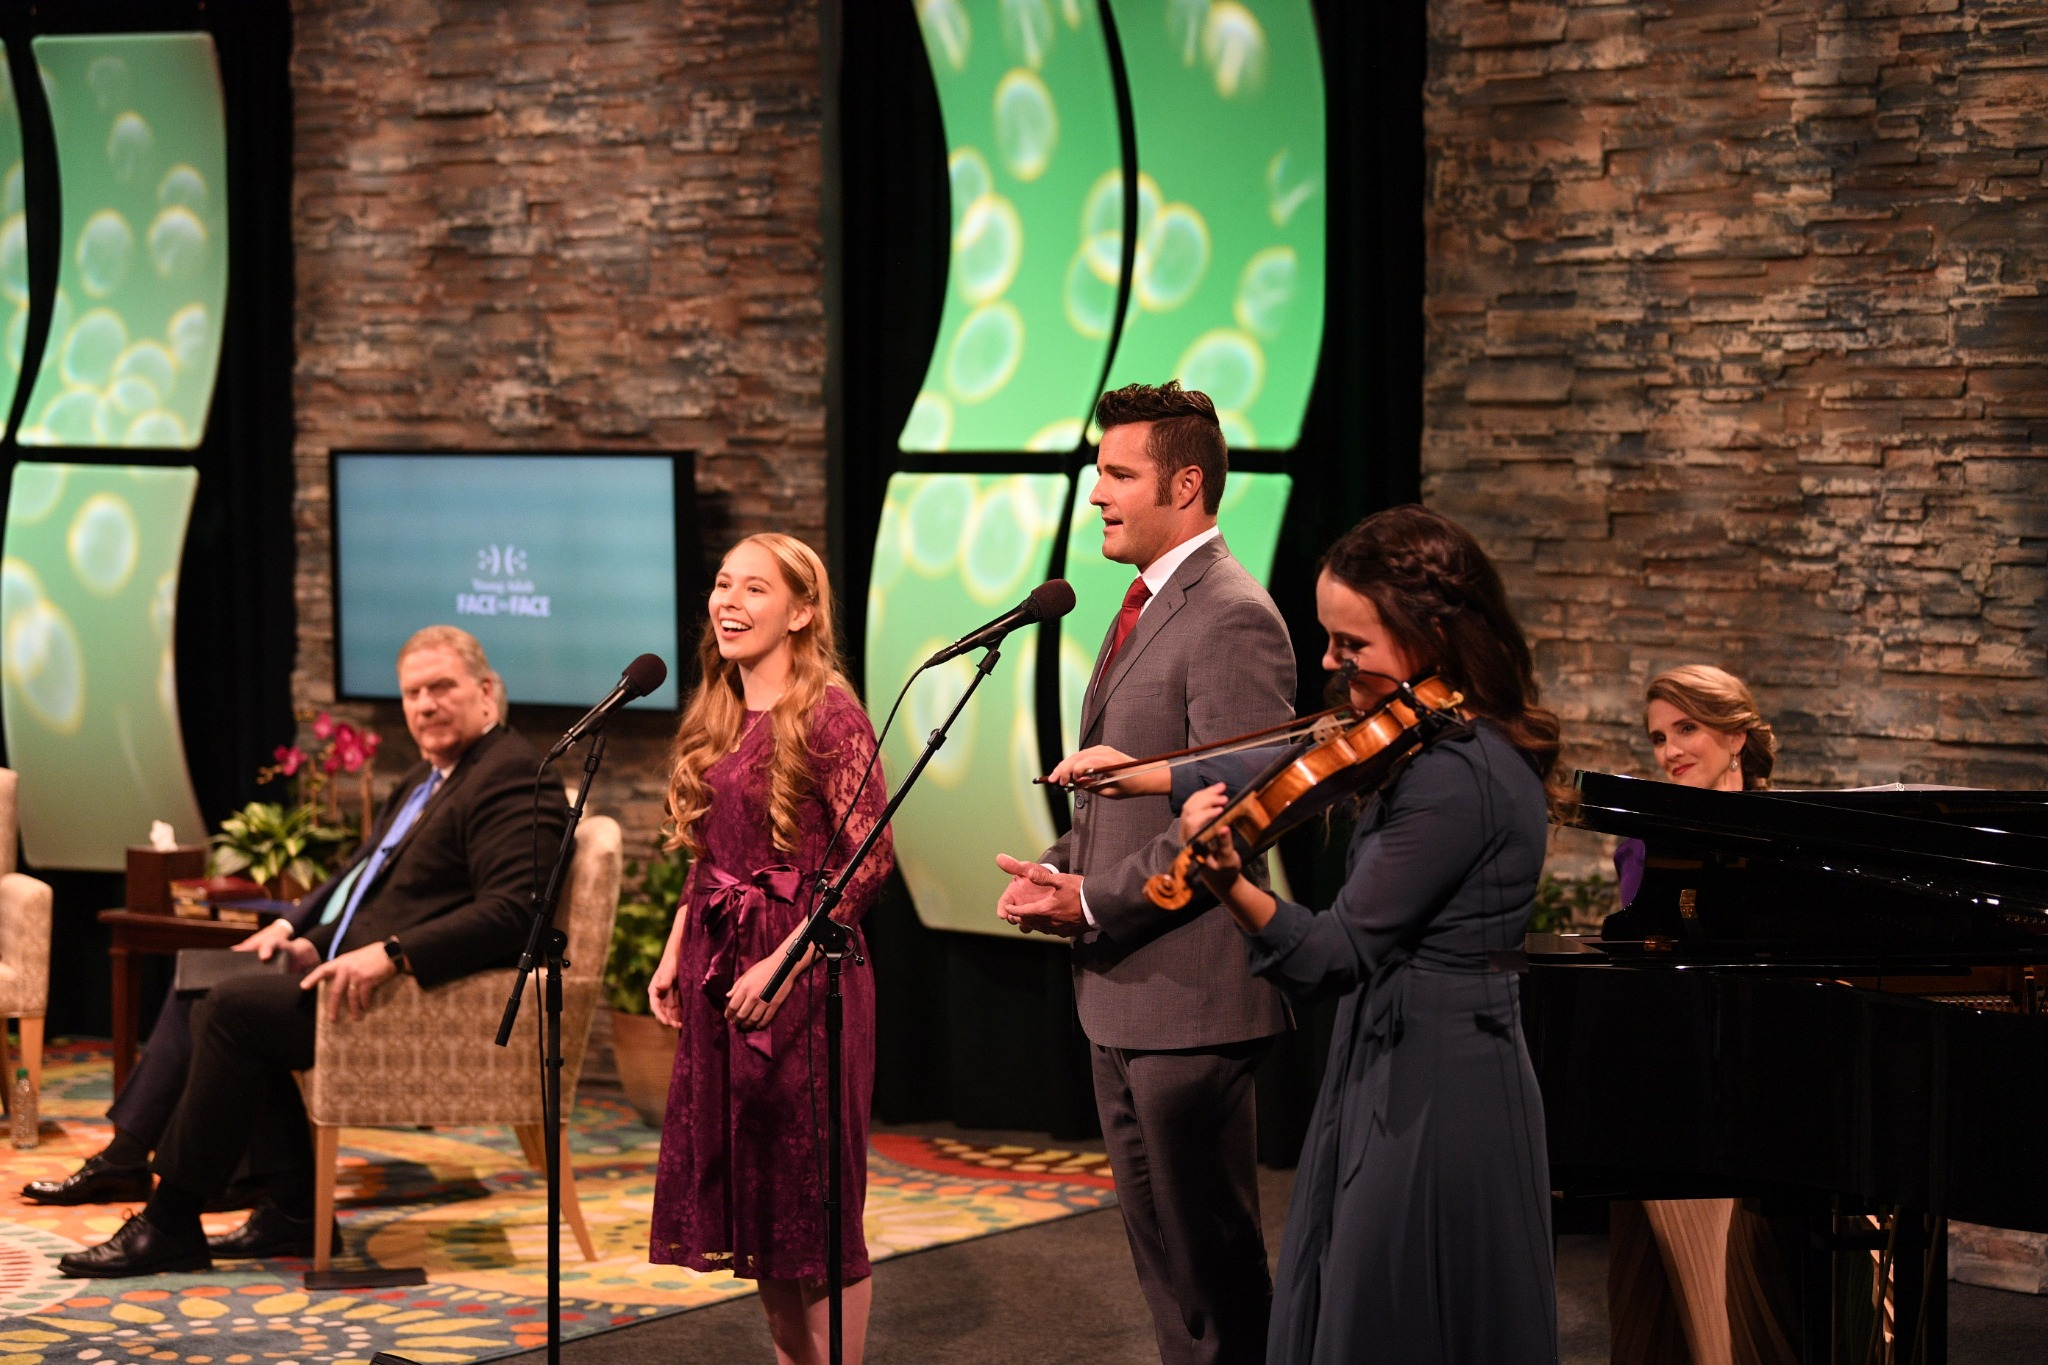 A musical selection was performed during the Face to Face broadcast in Provo, Utah, on Sunday, September 15, 2019.